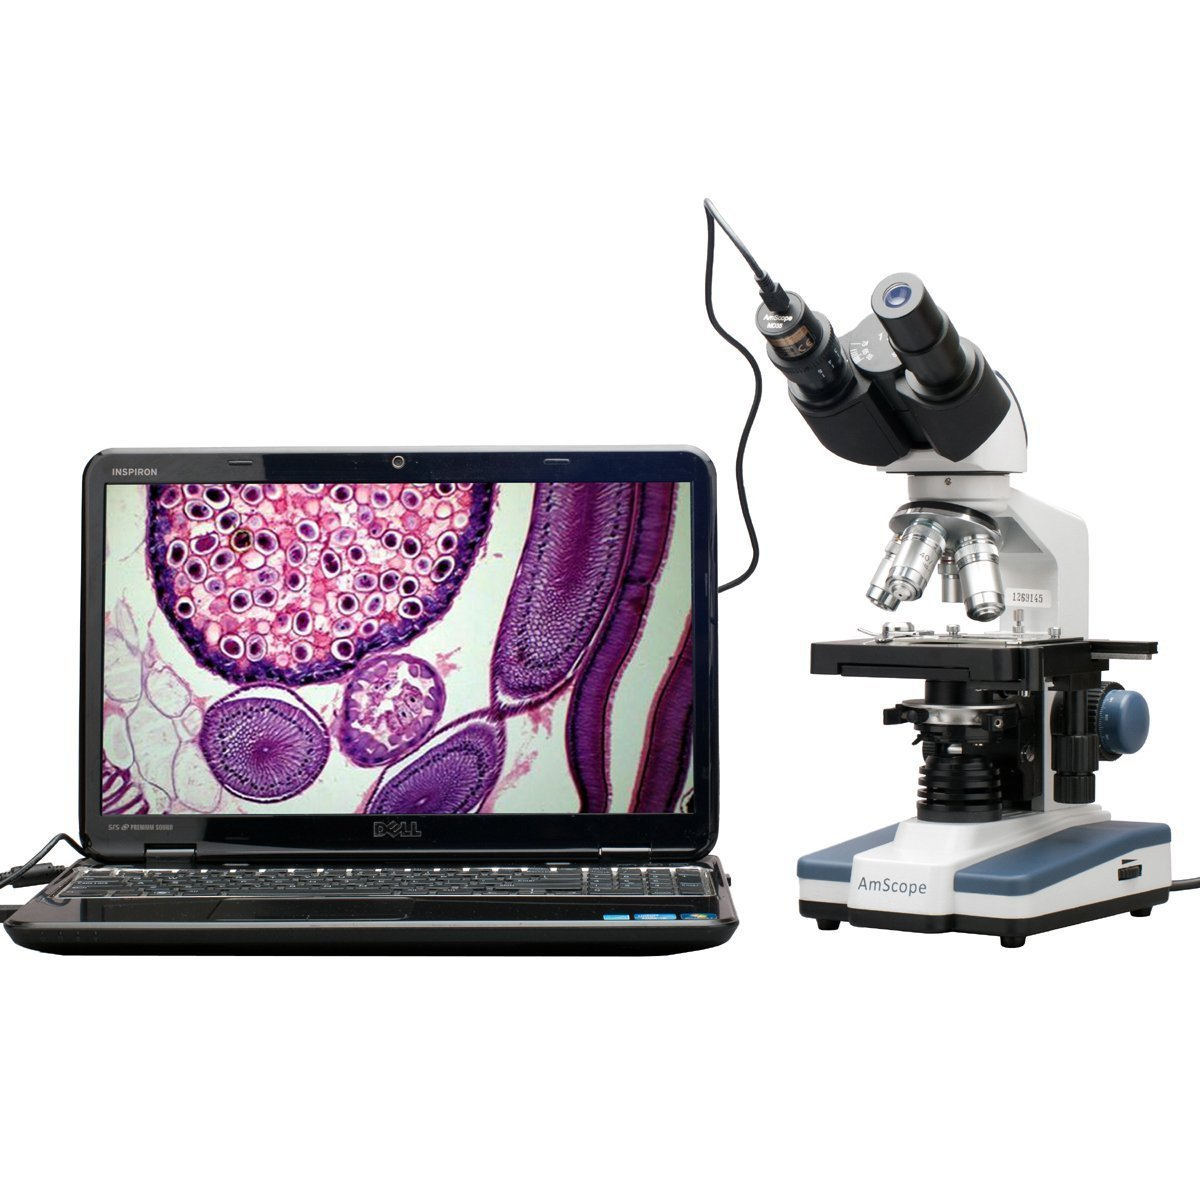 AmScope 40X-2500X LED Digital Binocular Compound Microscope w 3D Stage + 5MP USB Camera